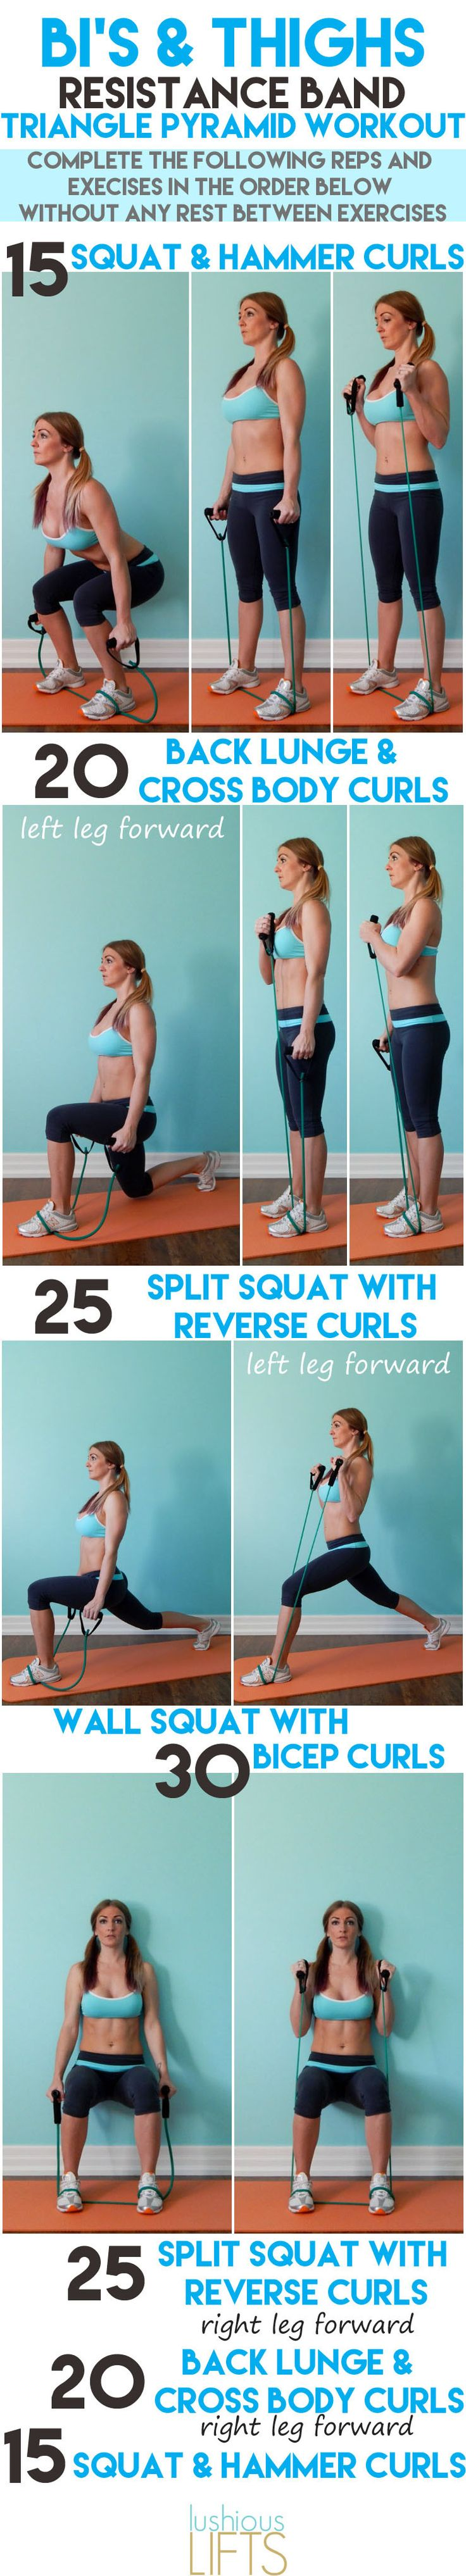 Burn more calories by combining two exercises together in this Bi's and Thighs Resistance Band Triangle Pyramid Workout || lushiouslifts.com